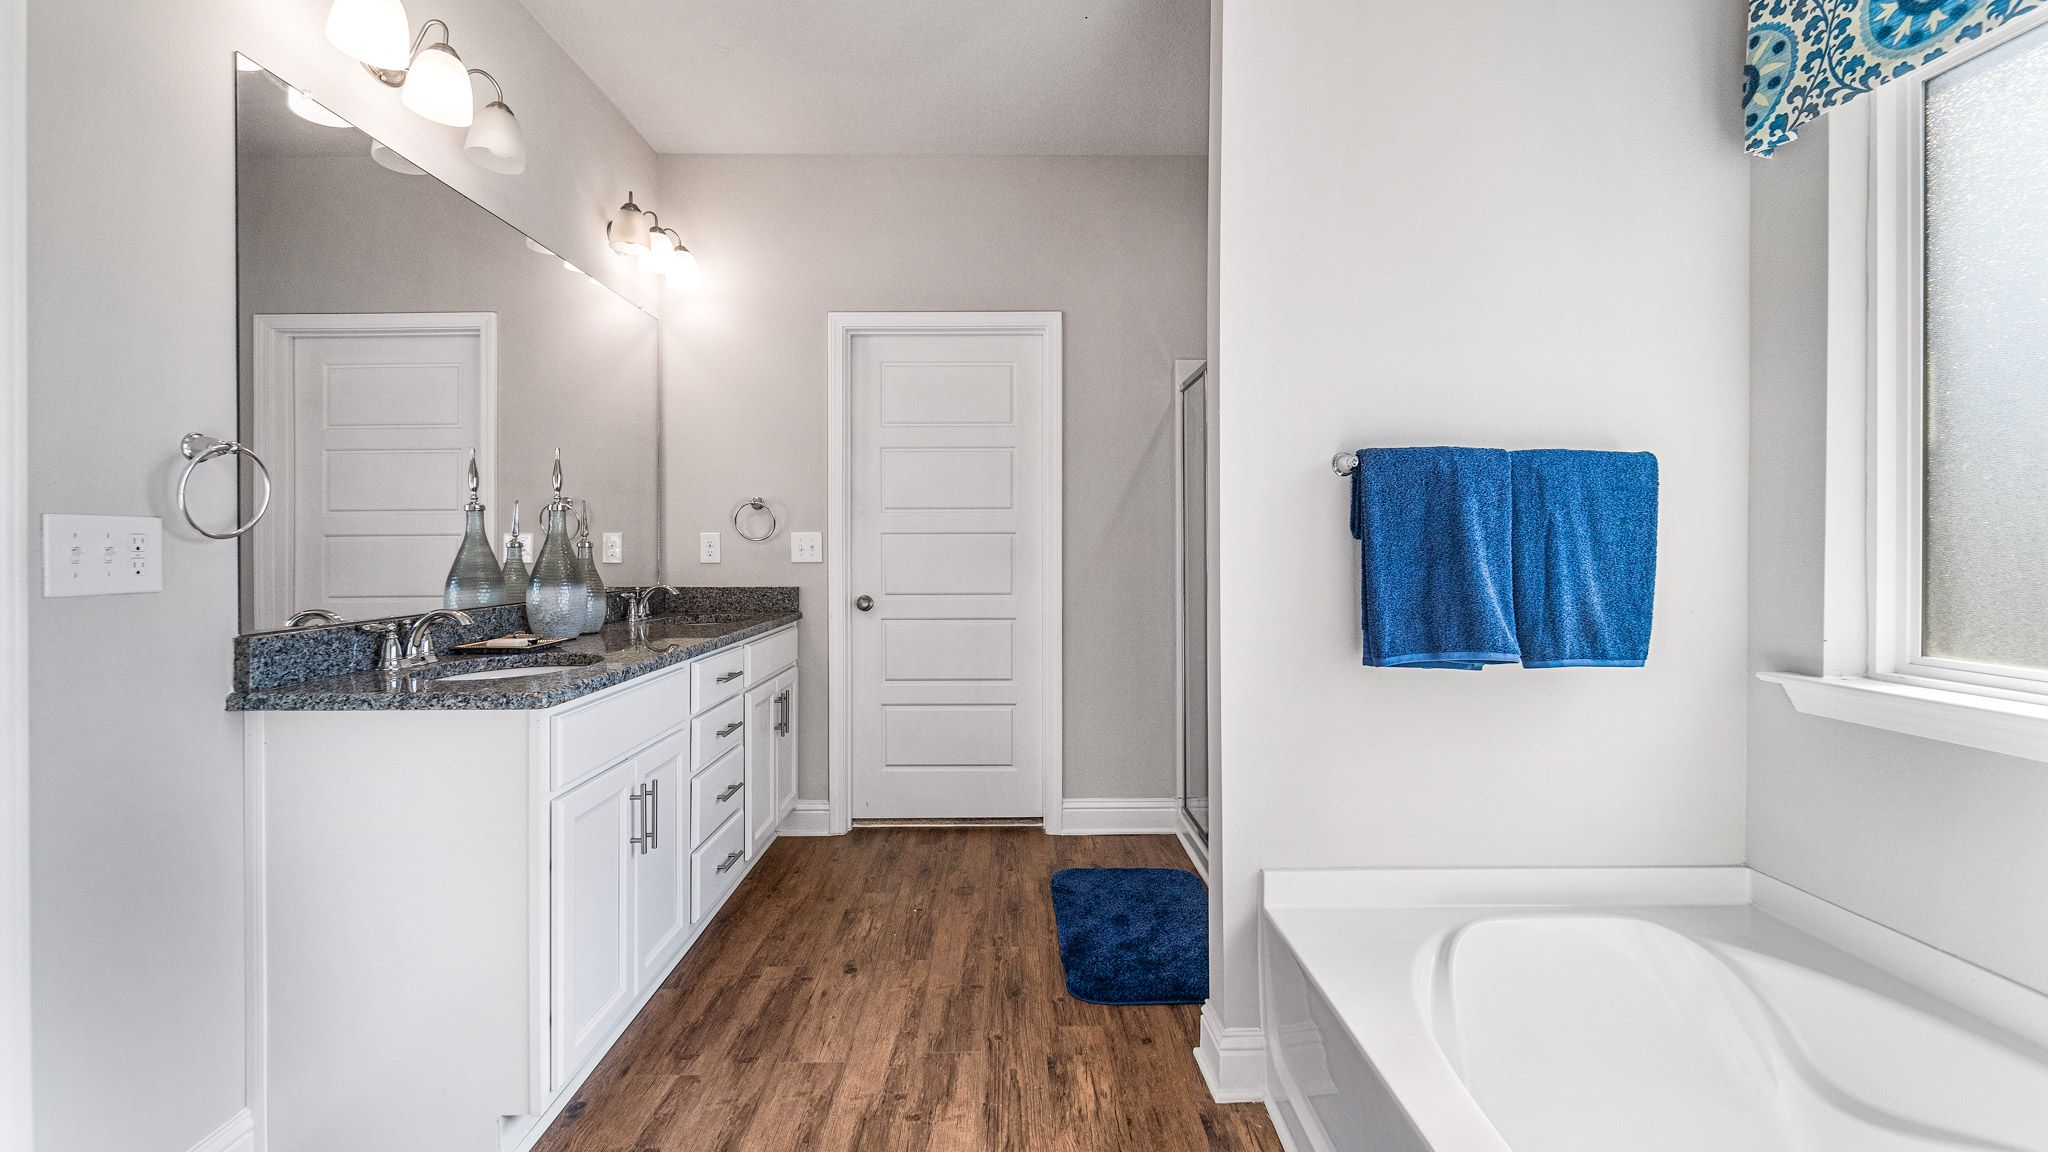 Bathroom featured in The Victoria By D.R. Horton in Mobile, AL